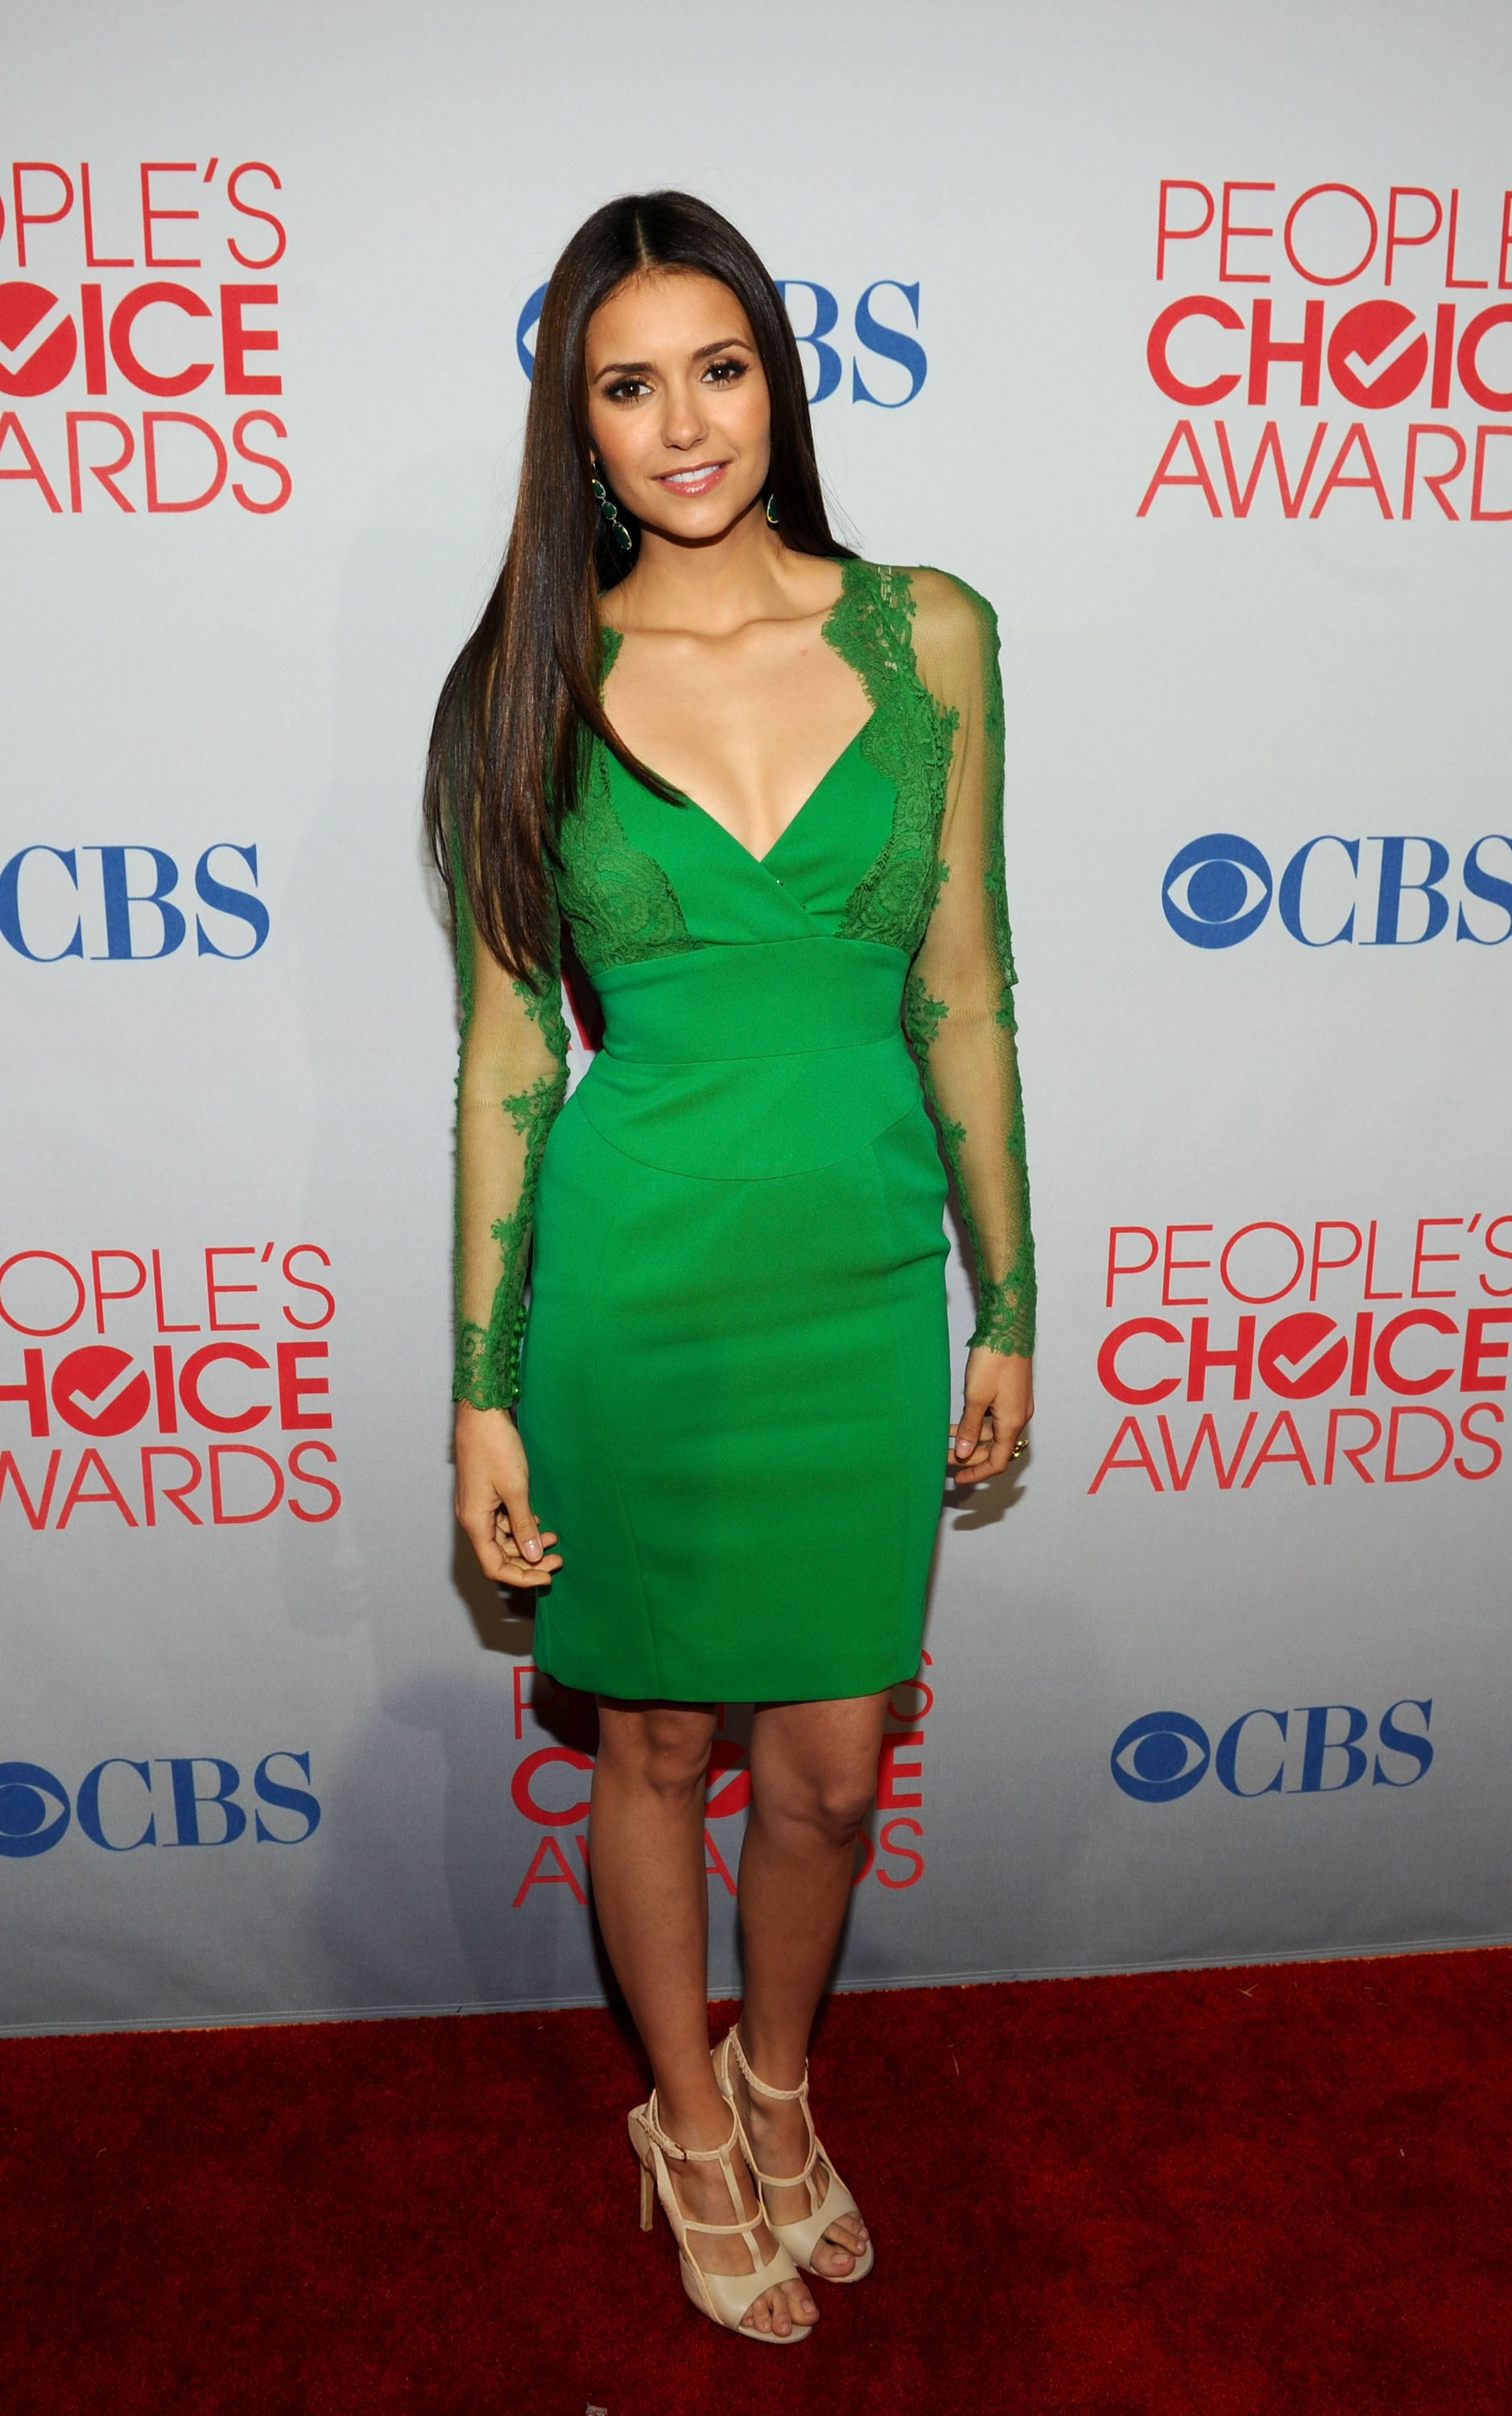 Nina Dobrev worked her Elie Saab dress at the 2012 People's Choice Awards.